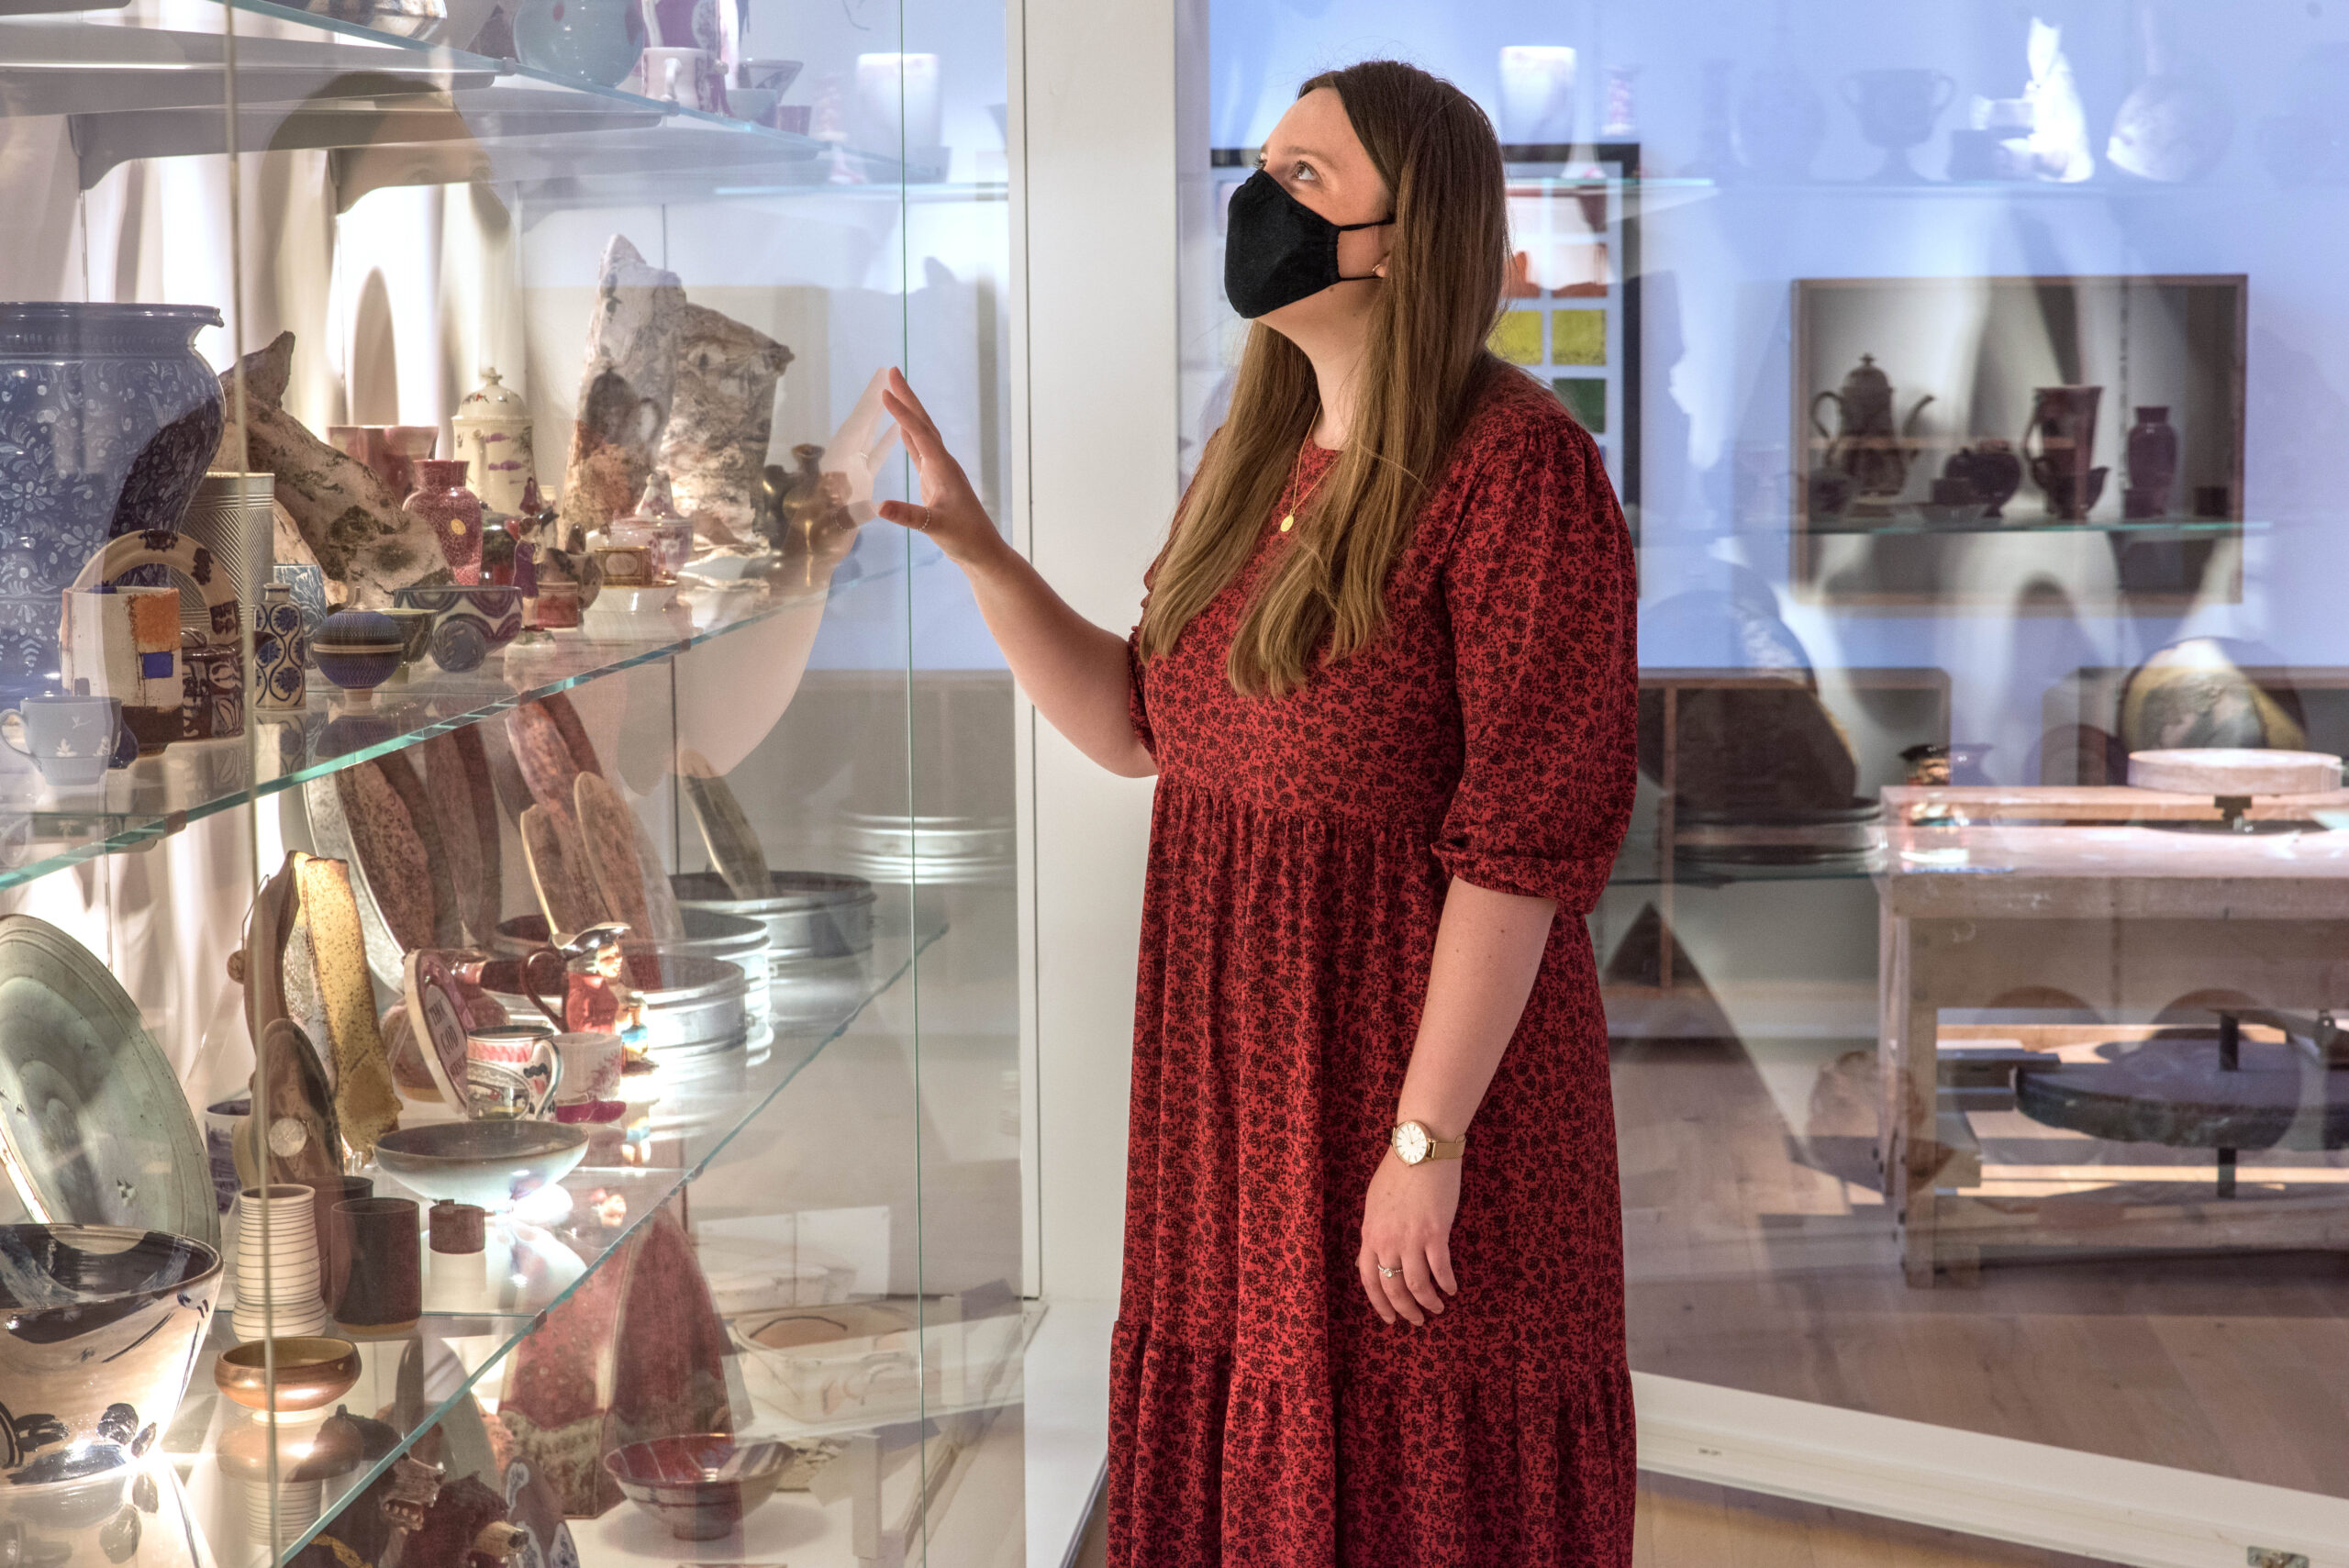 Woman in a red dress and black masks stands in front of a glass case filled with ceramics